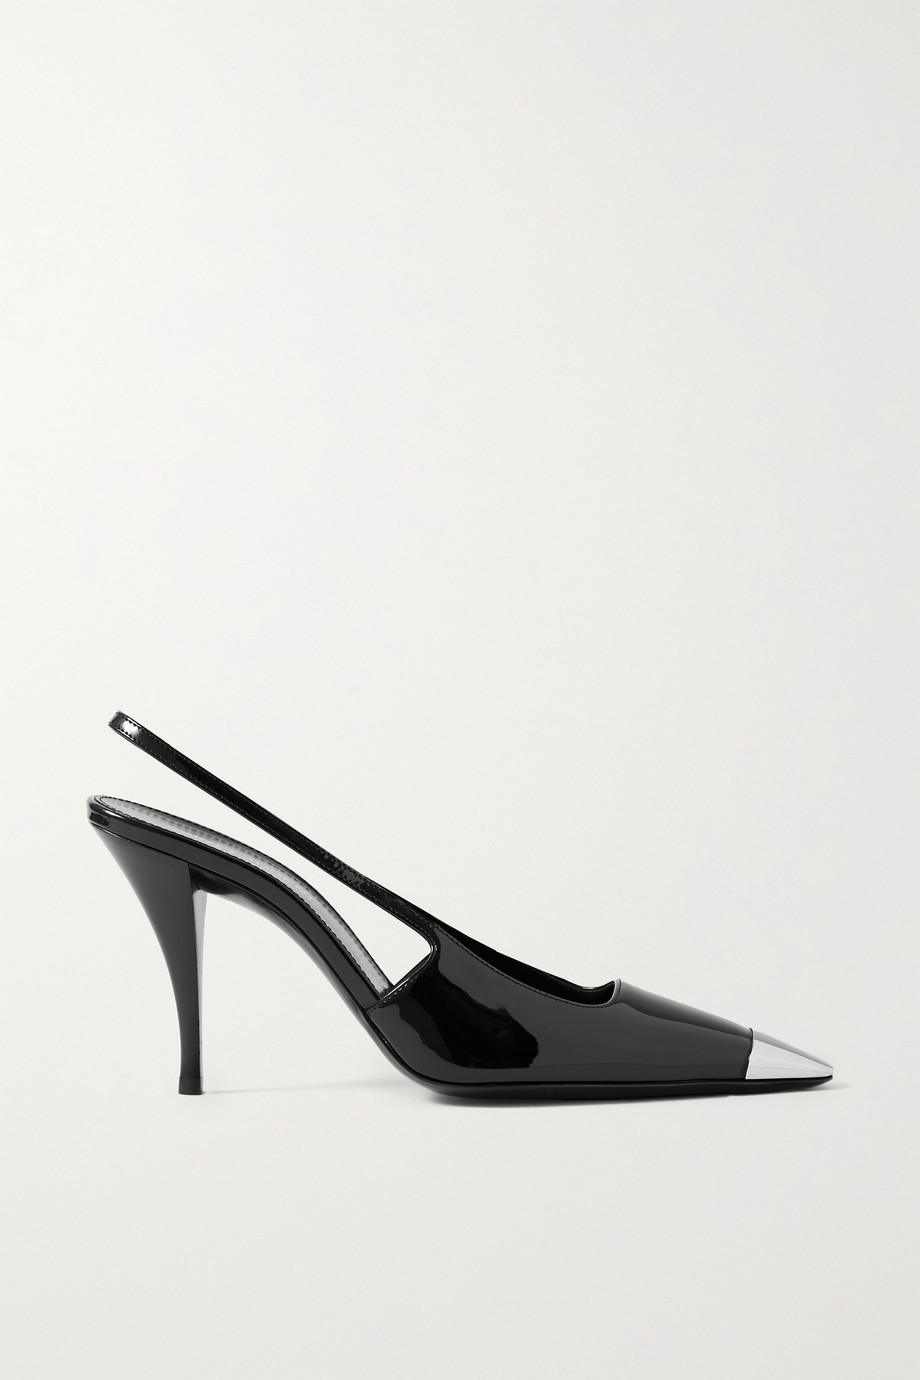 SAINT LAURENT Blade embellished patent-leather slingback pumps